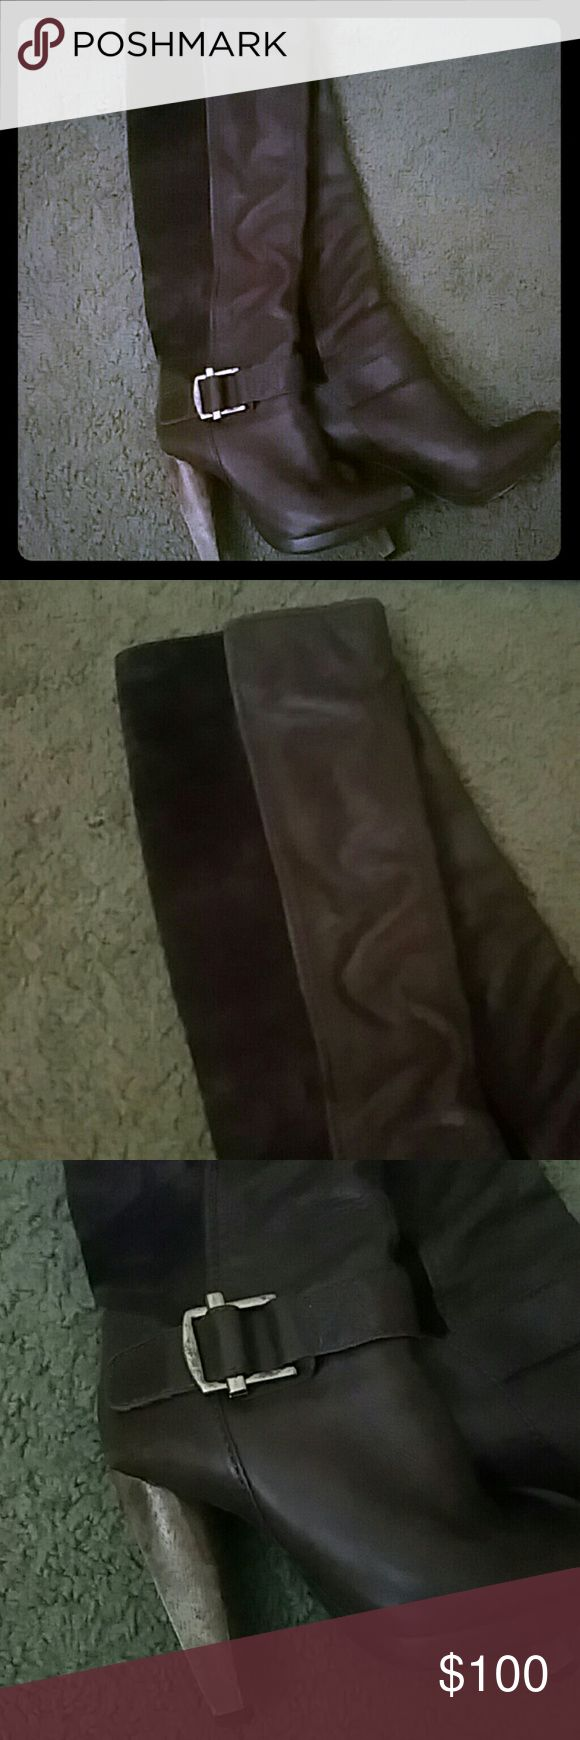 Beautiful chocolate brown boots Beautiful chocolate brown boots from French Connection. All leather, suede half on back. Gold buckle on side with wood heels. In very good condition, just a little scuff on point round toes. French Connection Shoes Heeled Boots